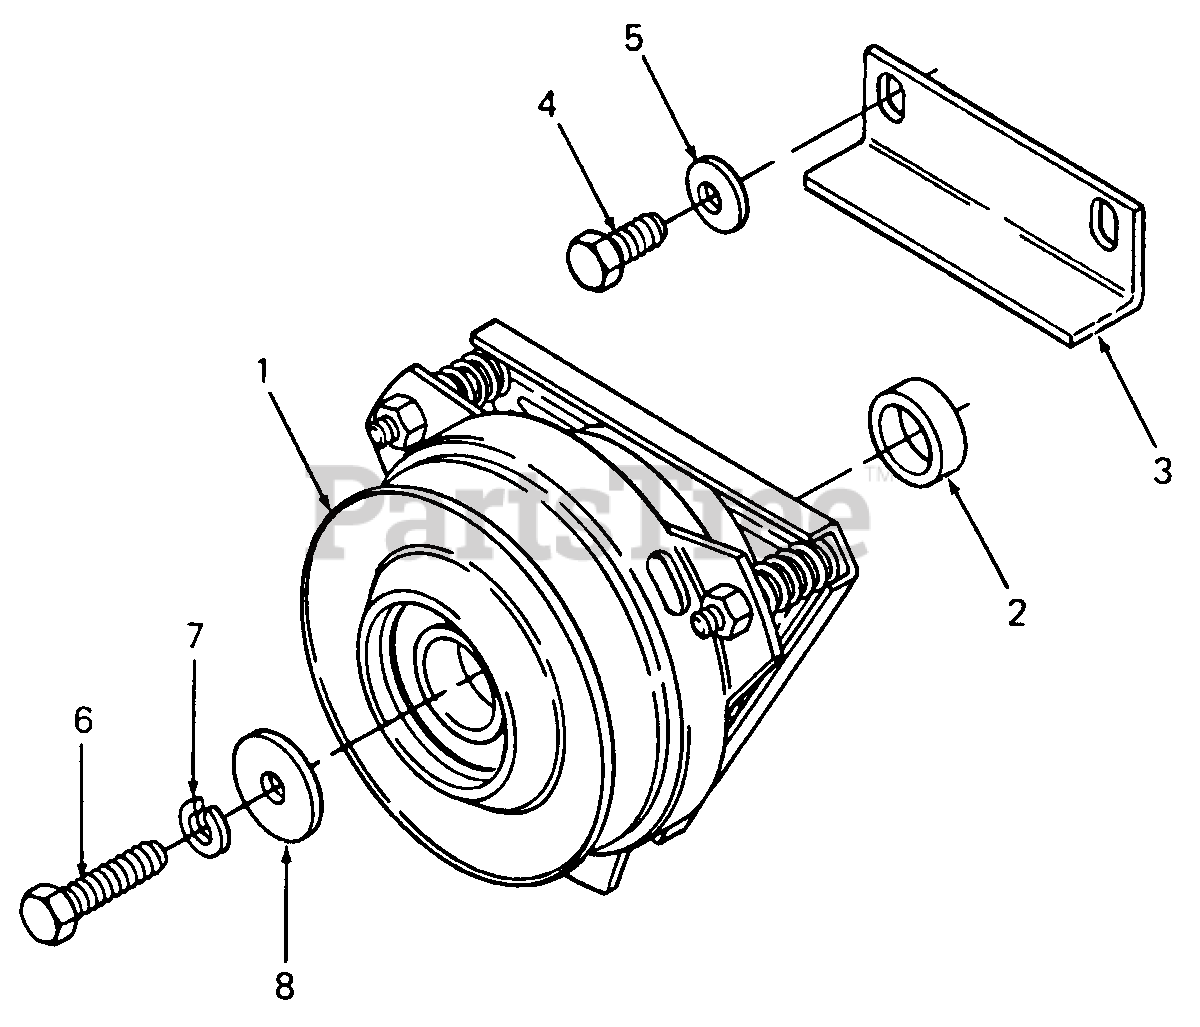 Cub Cadet Parts On The Pto Clutch Diagram For 1641  142-653-100